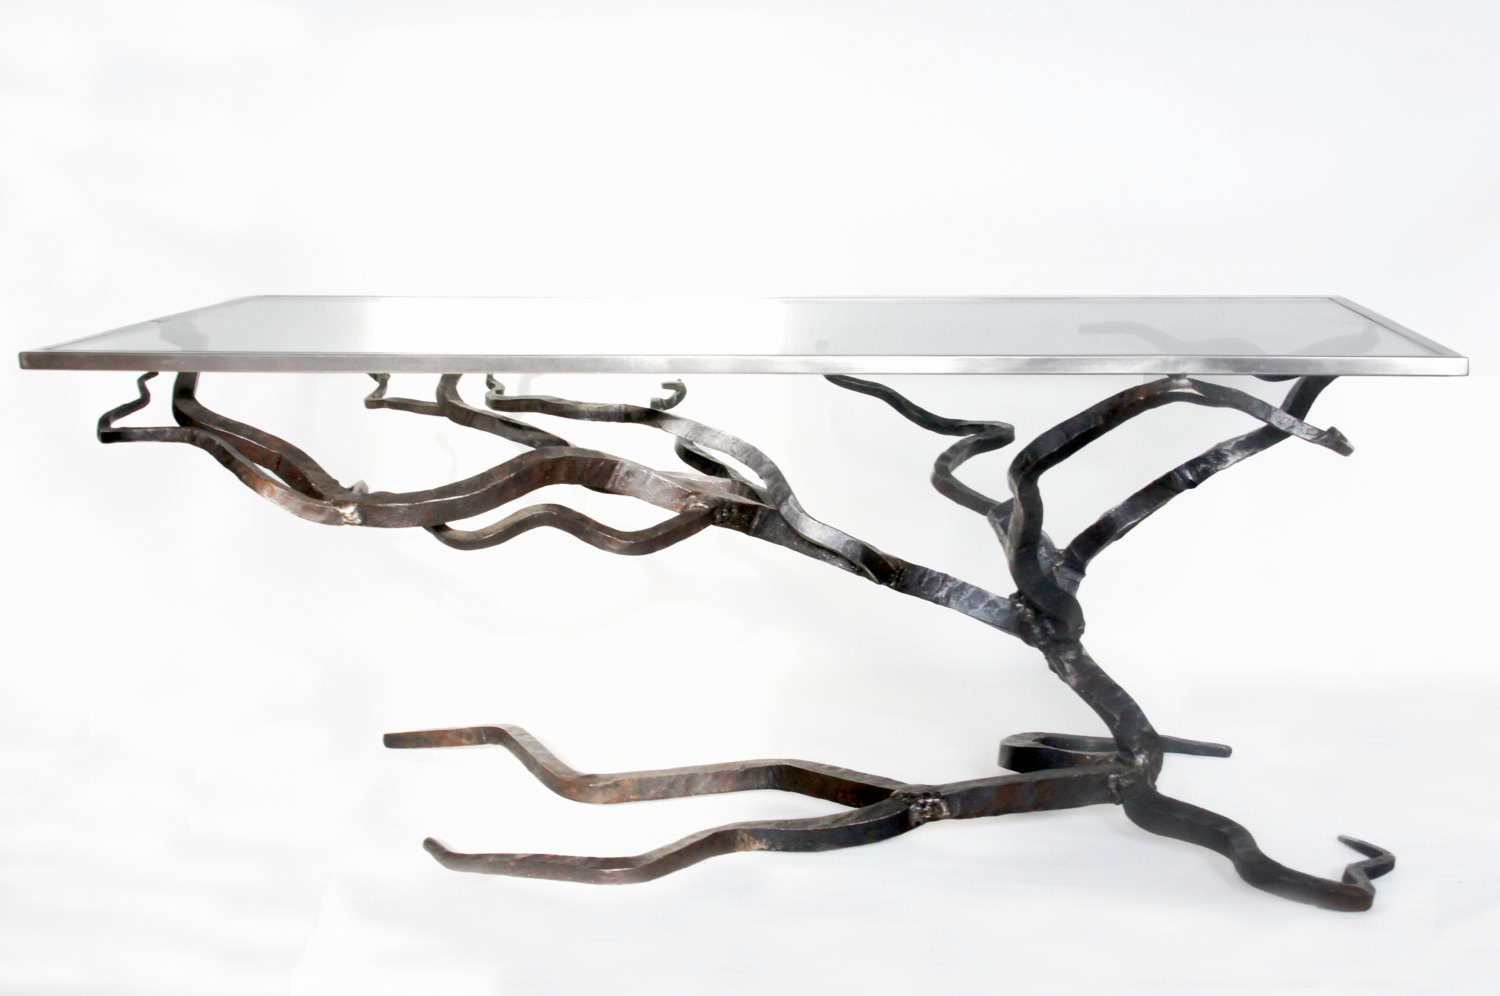 Modern Coffee Tables Tablesand Nemesis Family Modern Design Sofa Table Contemporary Glass (View 10 of 10)